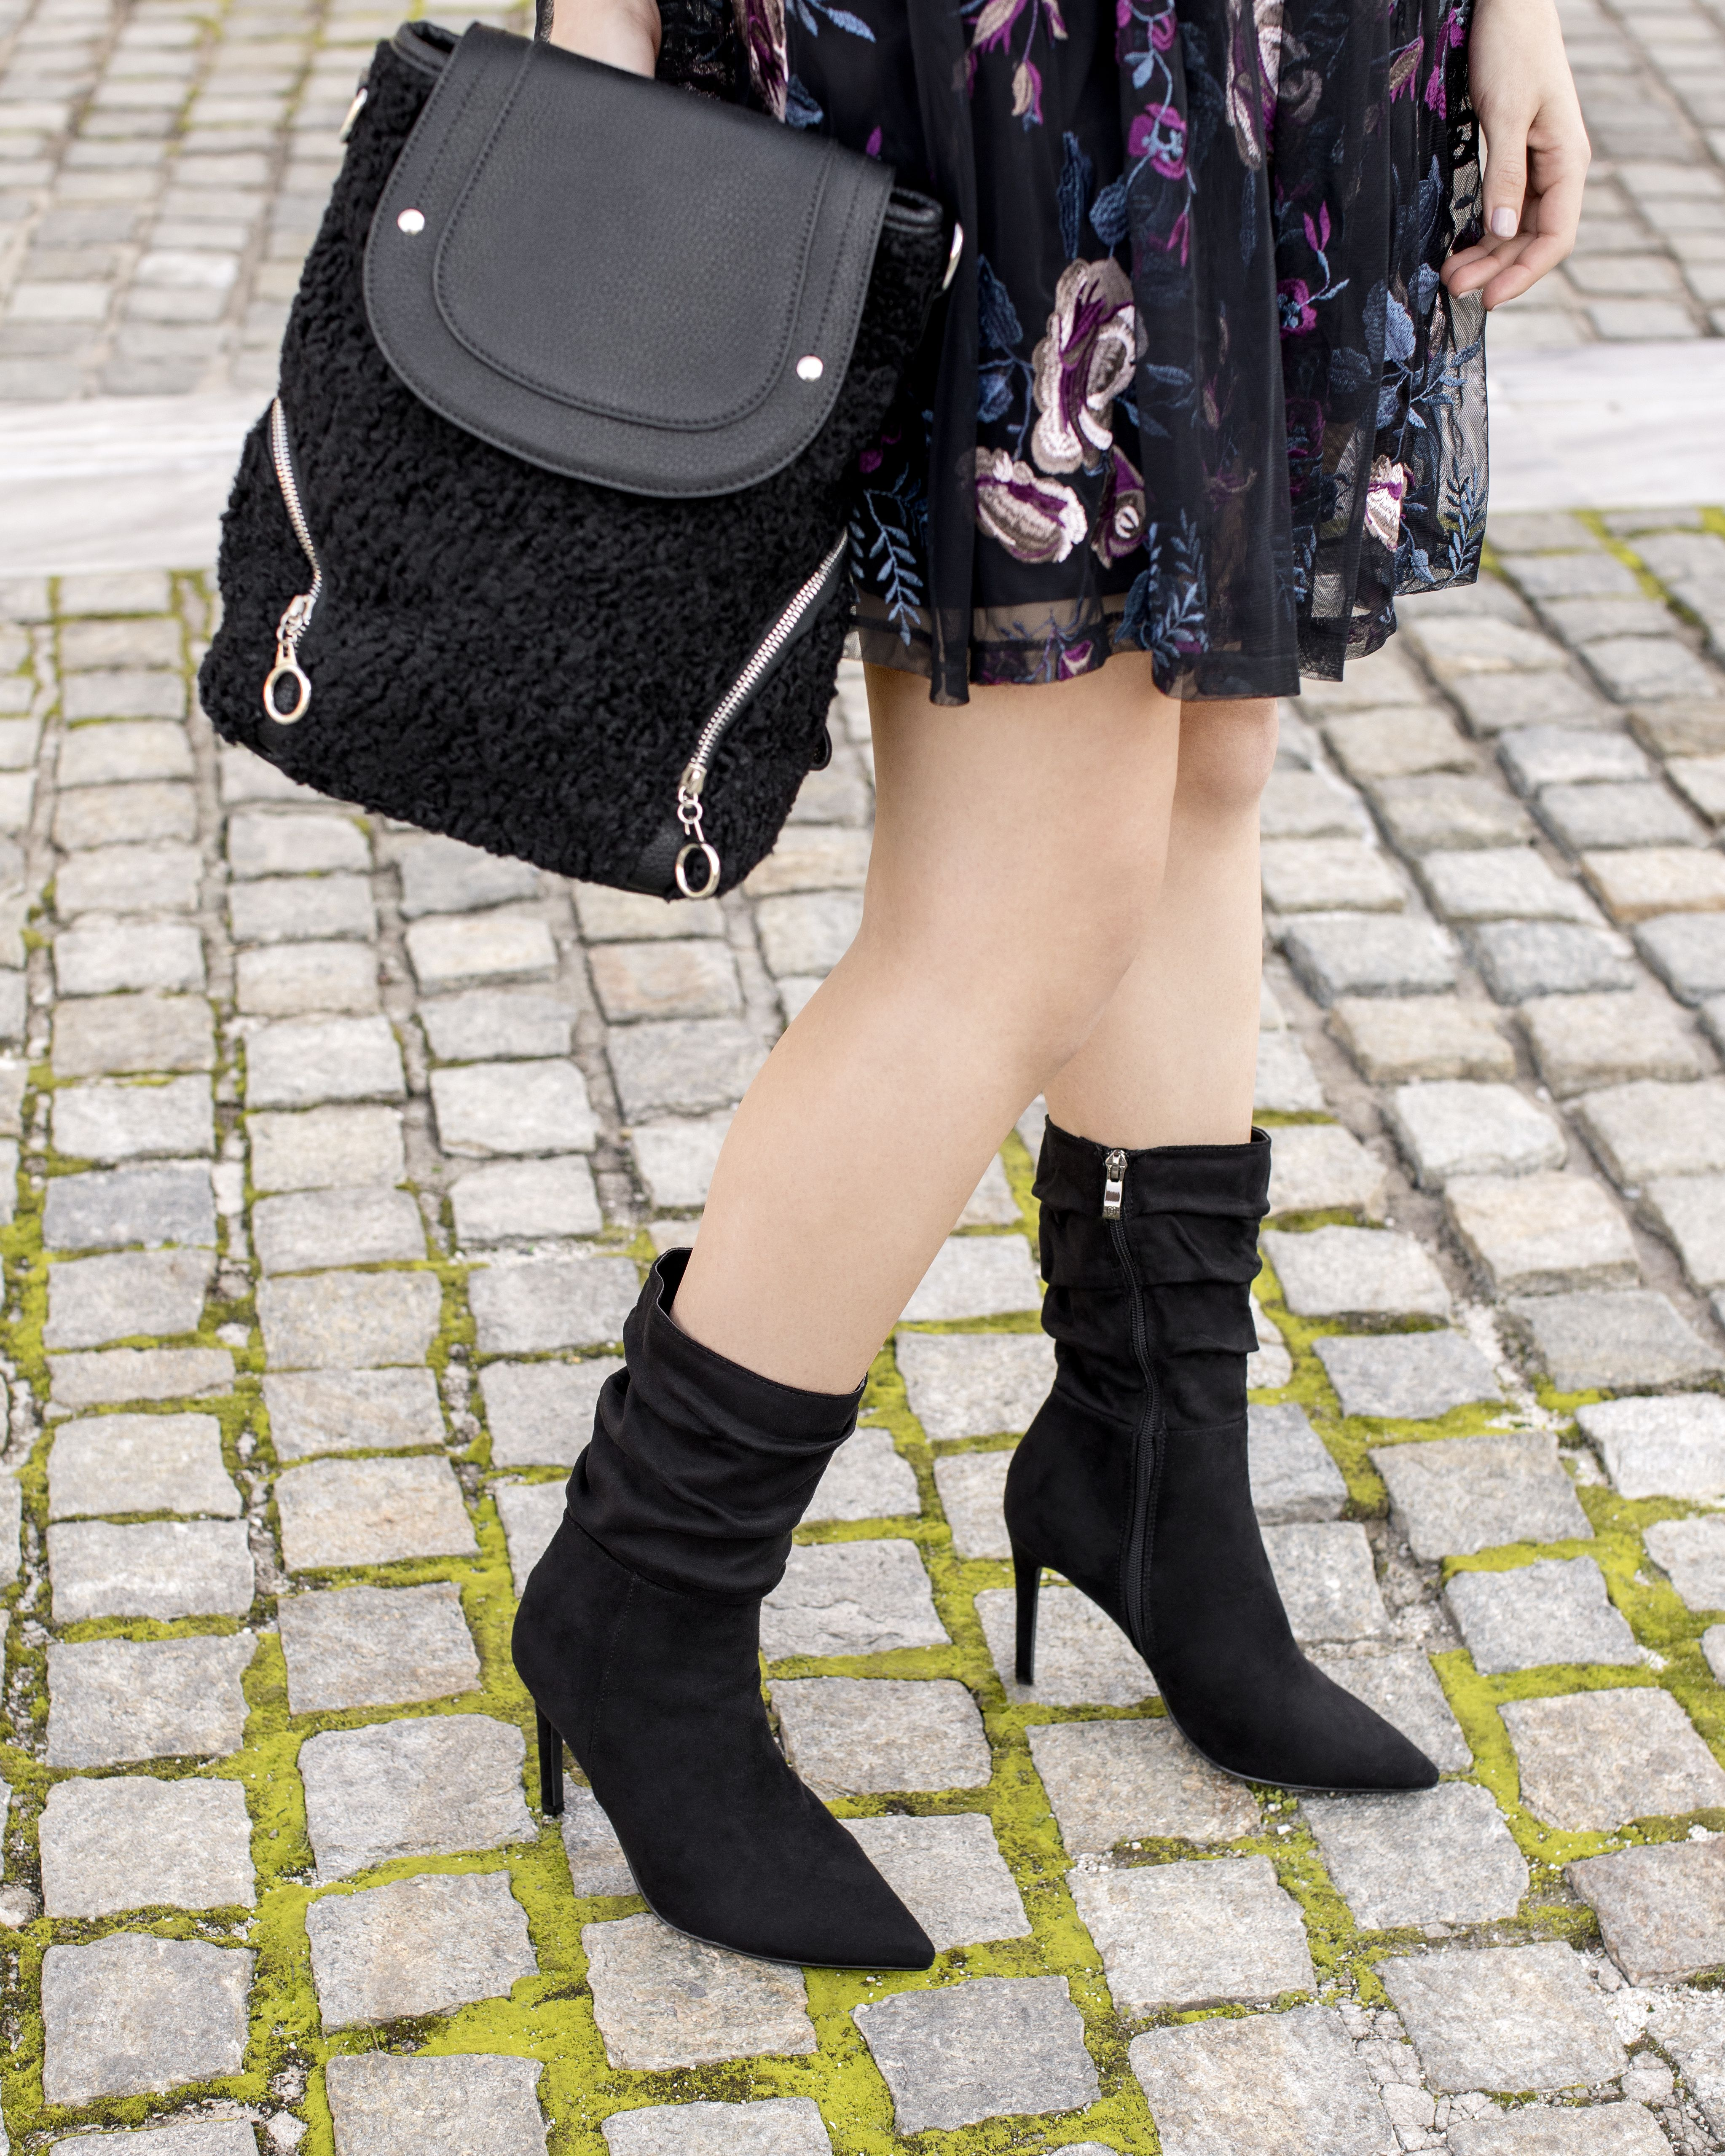 cbcdd017ac2 Strolling around the city in the stylish #MIGATO ES2025 black high heel  booties and EF23 black backpack! Shop online the booties ▻  bit.ly/ES2025-L14 and ...